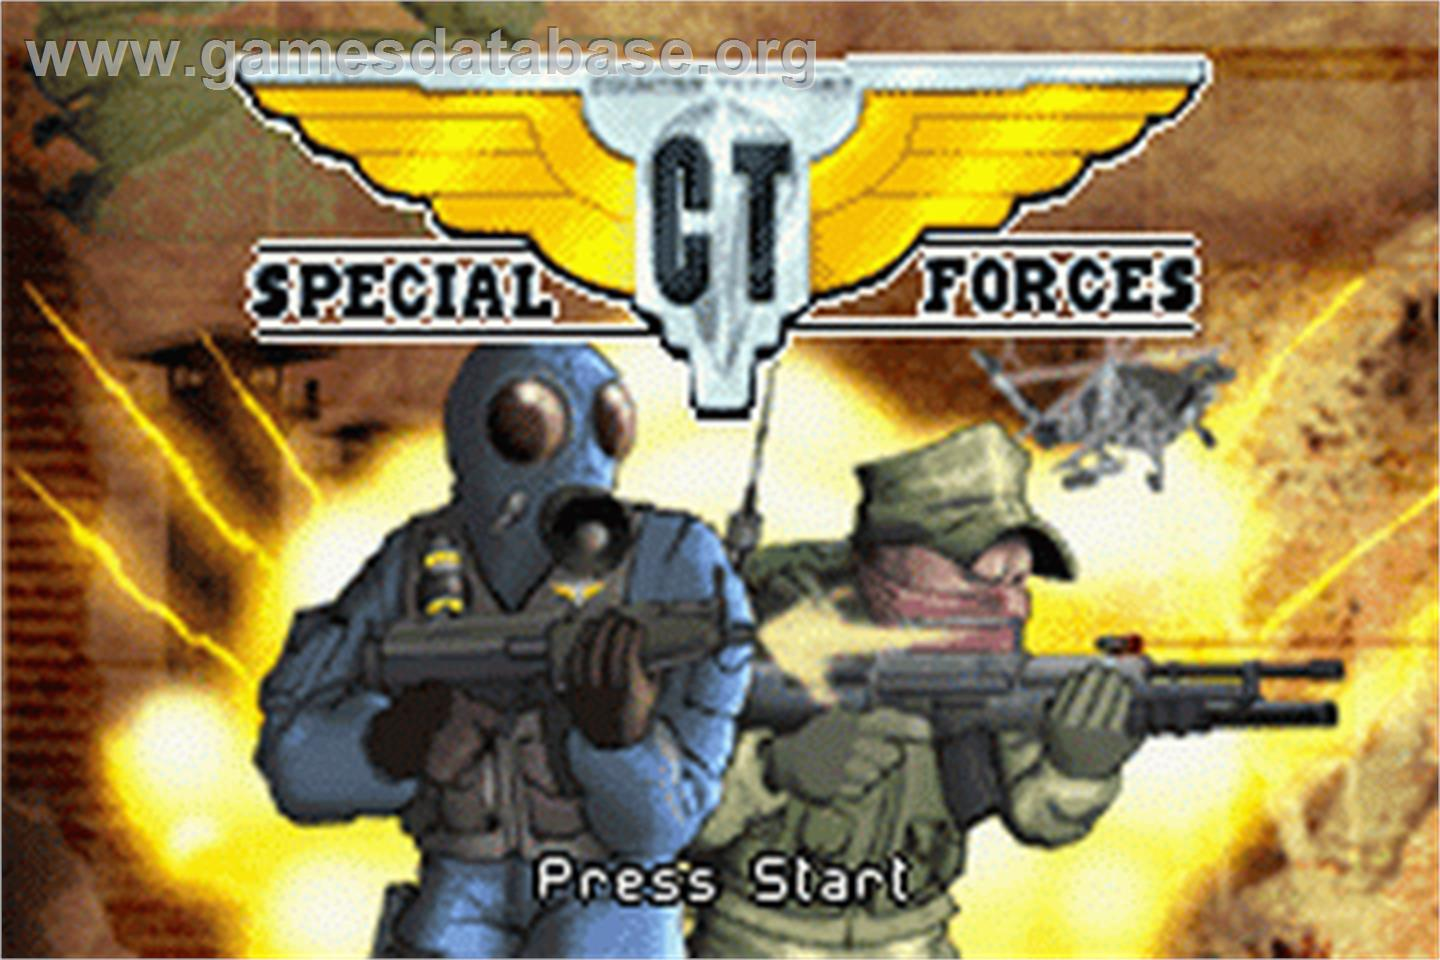 CT Special Forces - Nintendo Game Boy Advance - Artwork - Title Screen